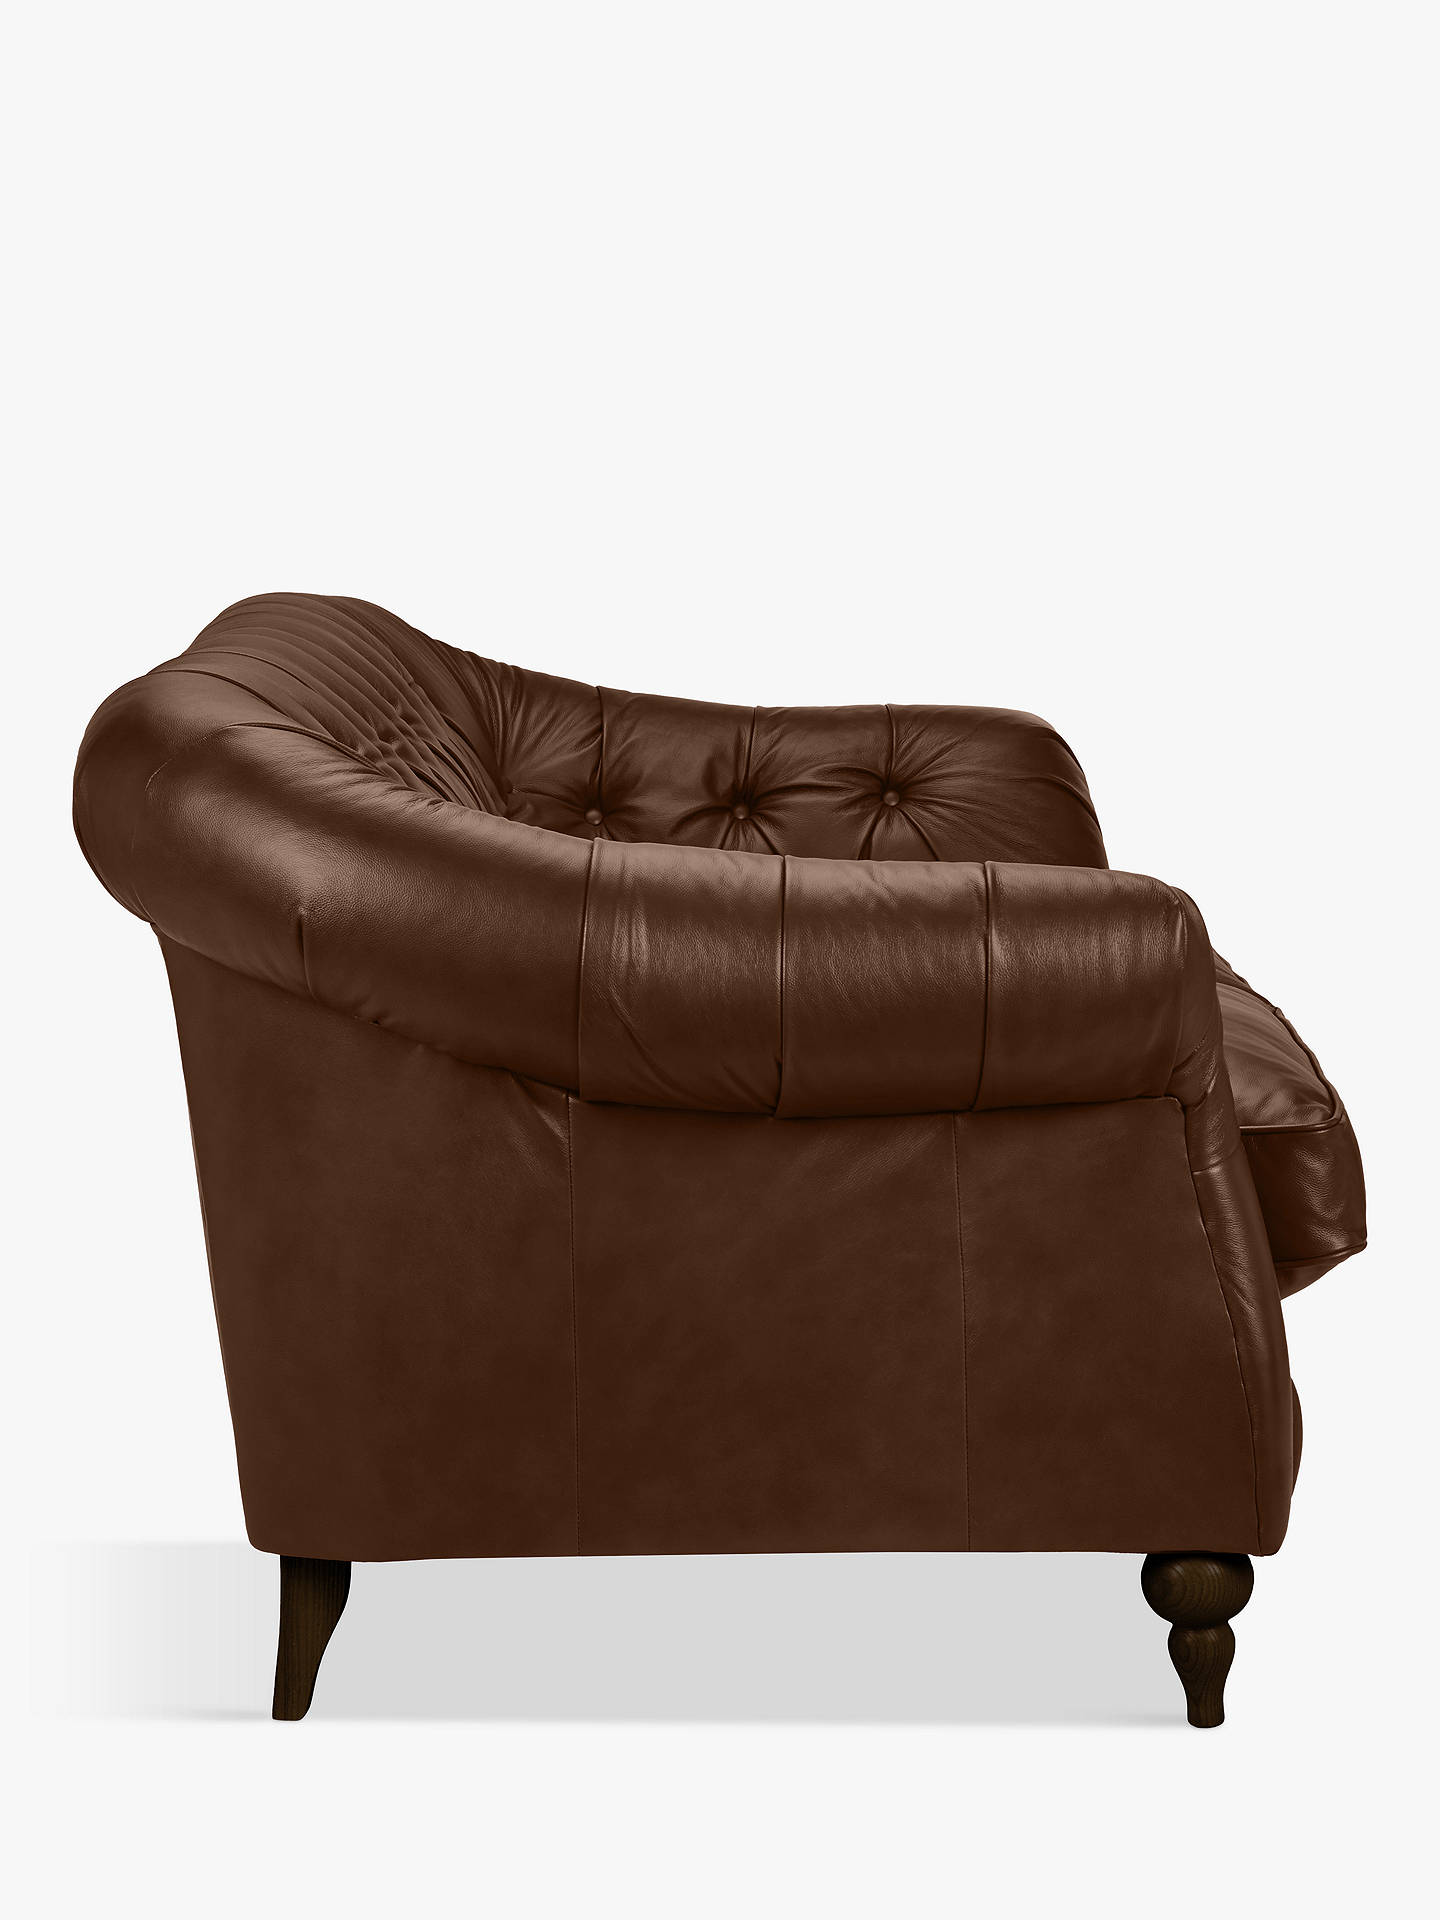 Pleasing John Lewis Partners Brompton Leather Medium 2 Seater Sofa Ncnpc Chair Design For Home Ncnpcorg